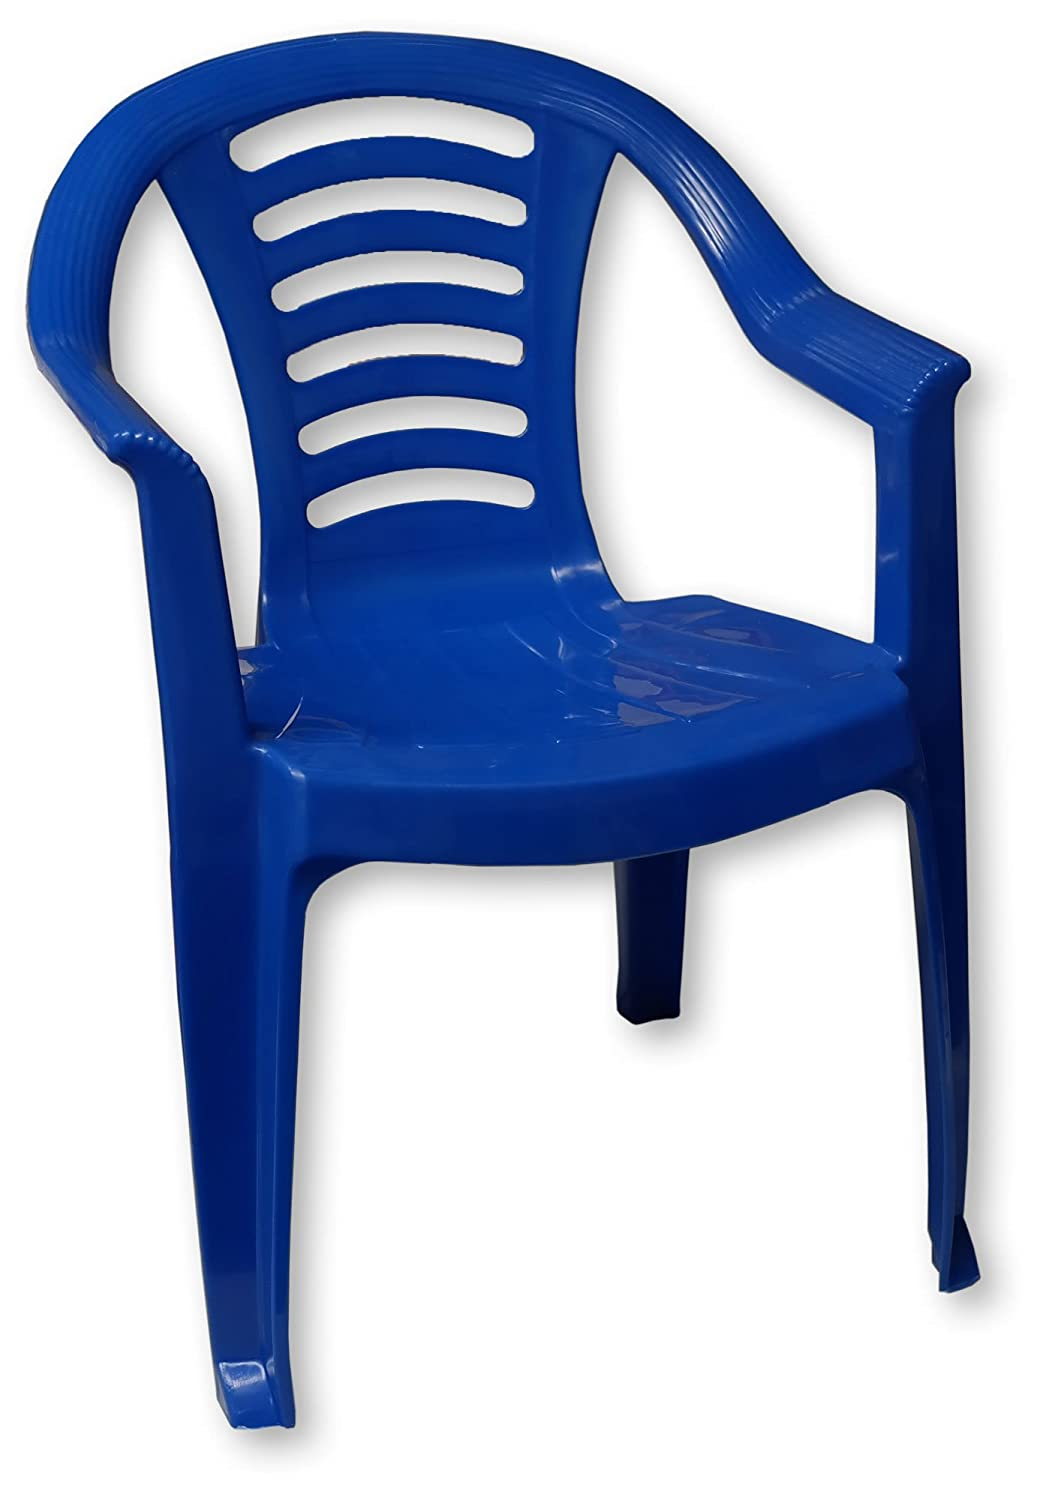 Blue Childrens Plastic Chair Nursery Set Outdoor Tea Party Toy Garden  Roleplay: Amazon.co.uk: Garden U0026 Outdoors